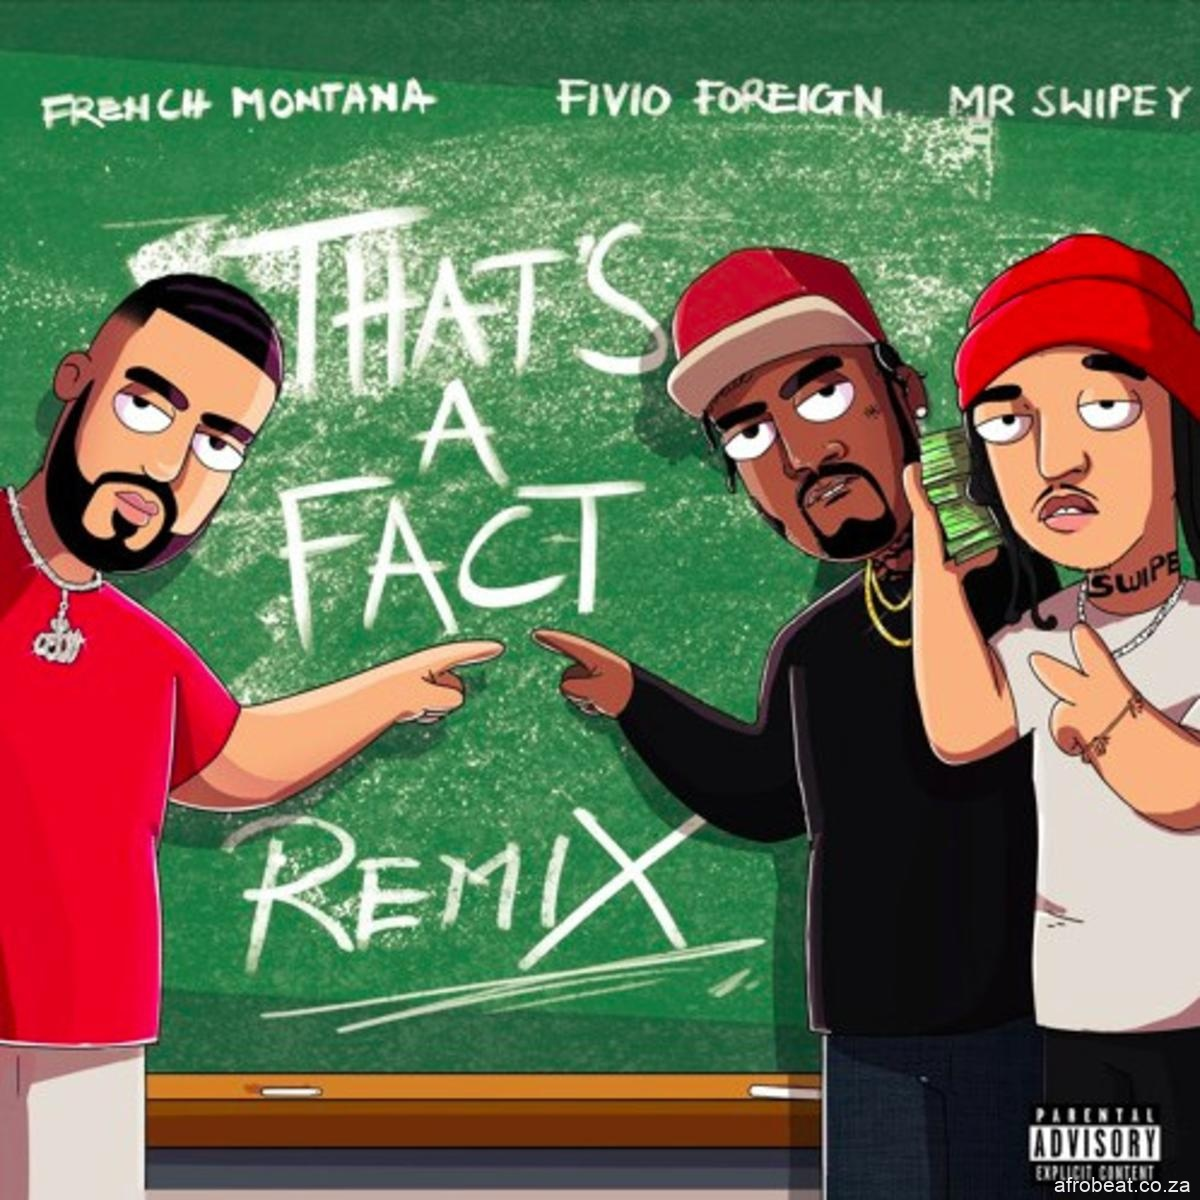 Download French Montana Thats A Fact Remix Ft Fivio Foreign Mp3 Download Afro Beat Za - French Montana Ft. Fivio Foreig – That's A Fact